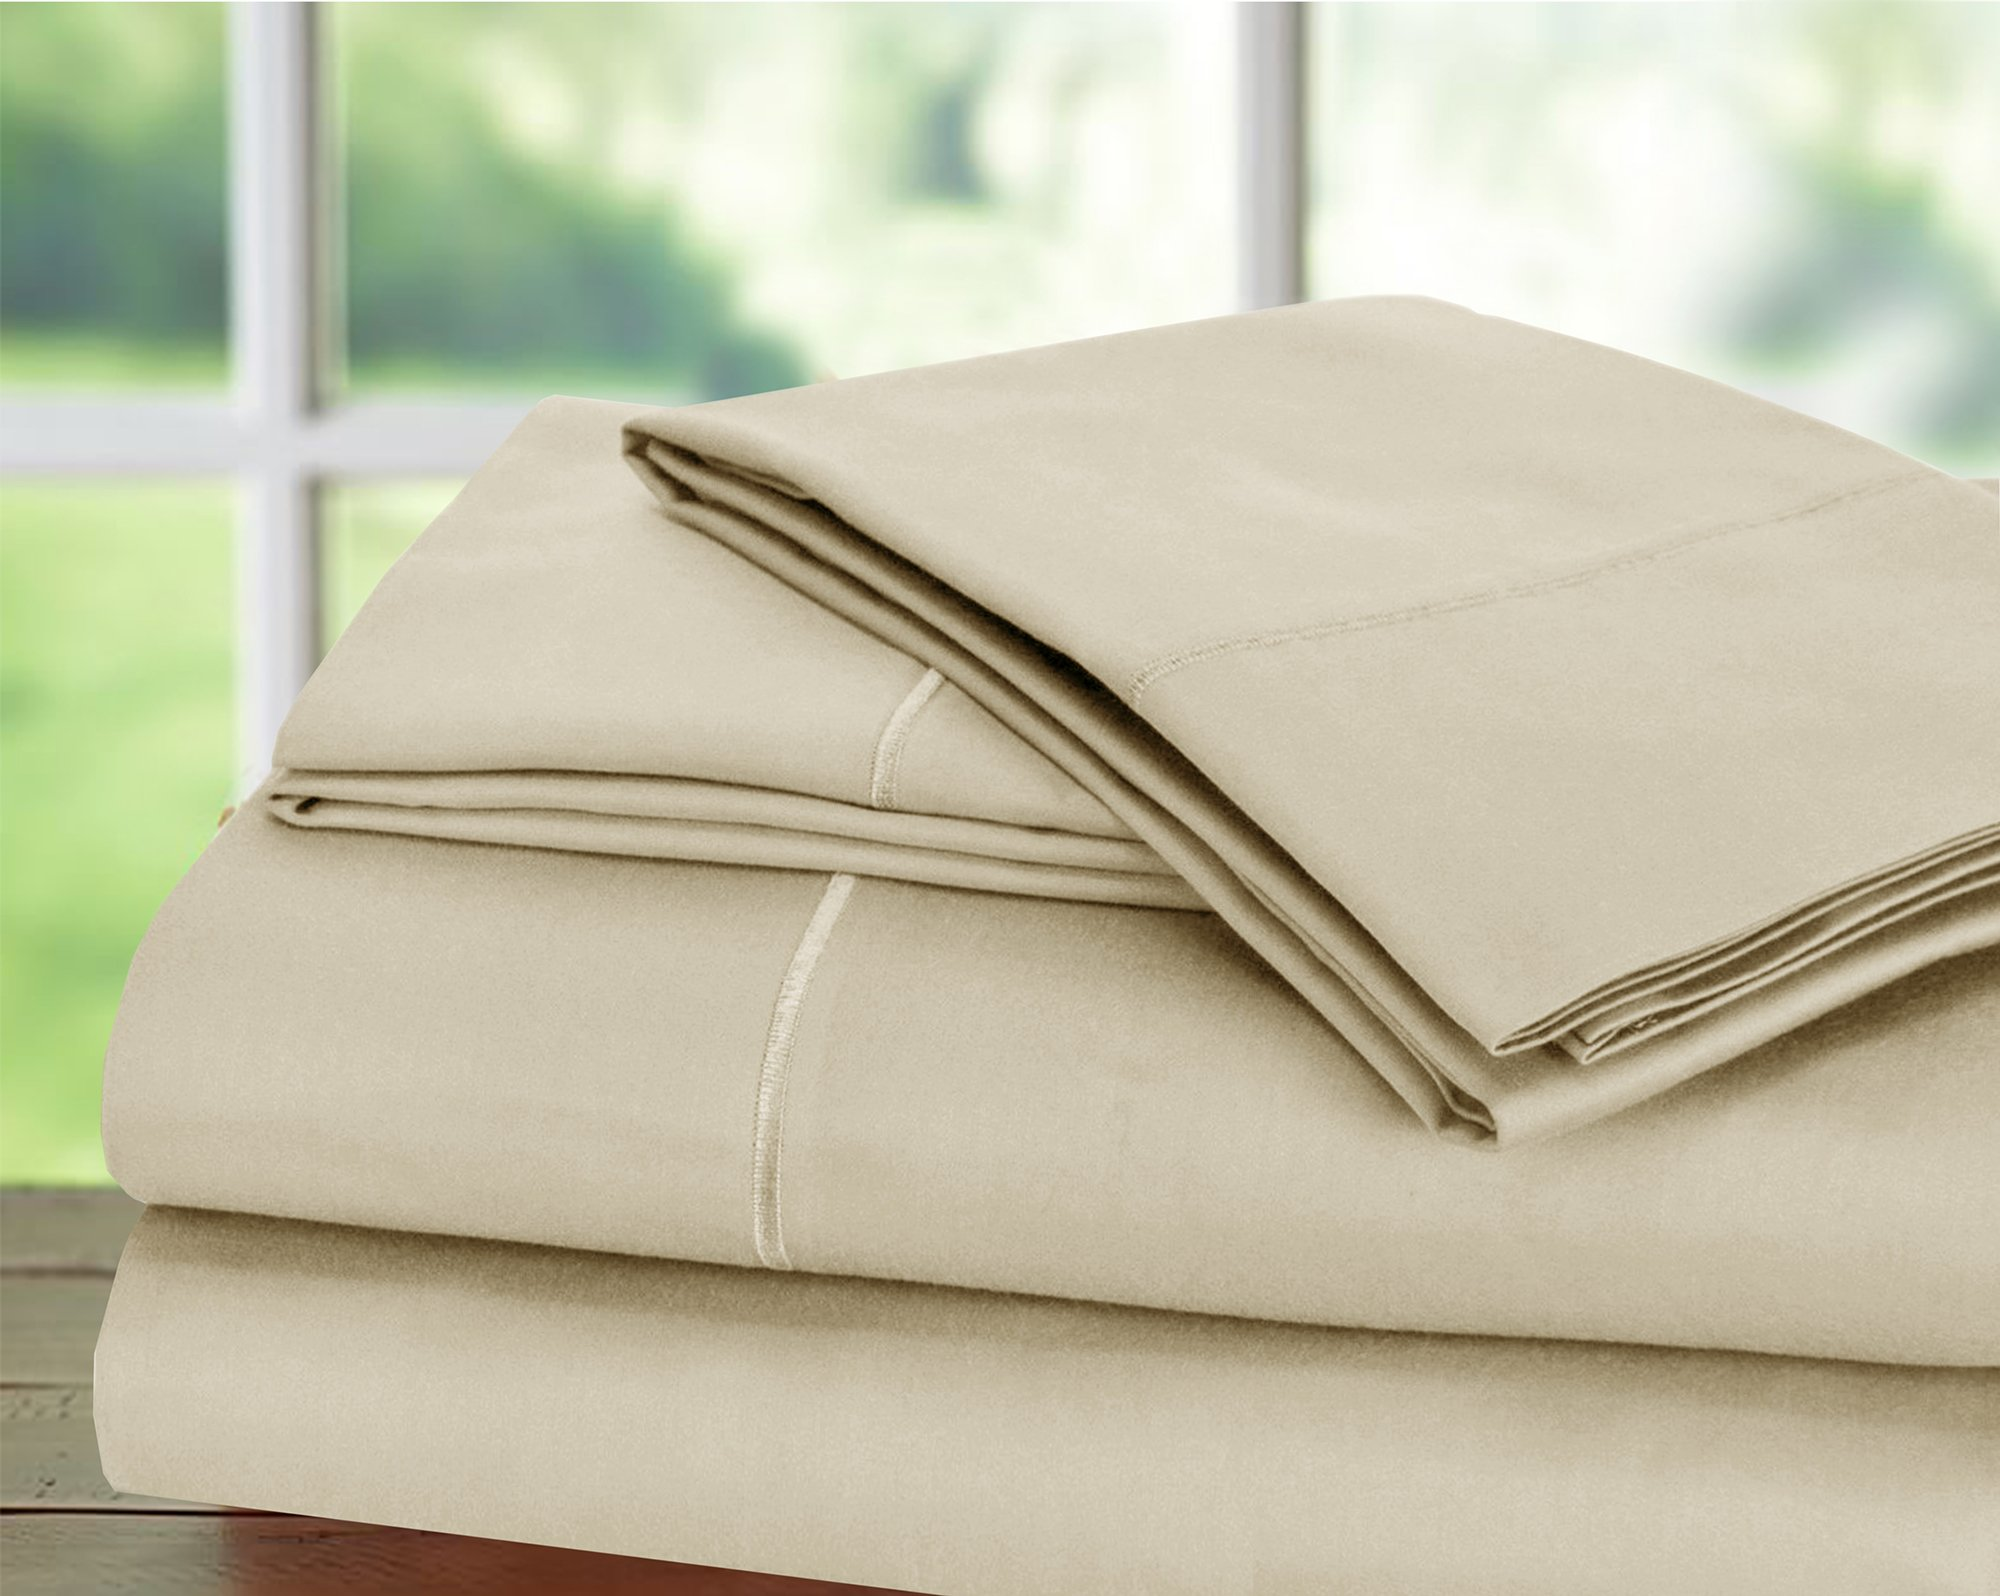 Hotel Collection! Luxury Sheets on Amazon Top Seller in Bedding! - Blockbuster Sale: Todays Special - Luxury 1000 Thread count 100% Egyptian Cotton Sheet Set, King - Ivory